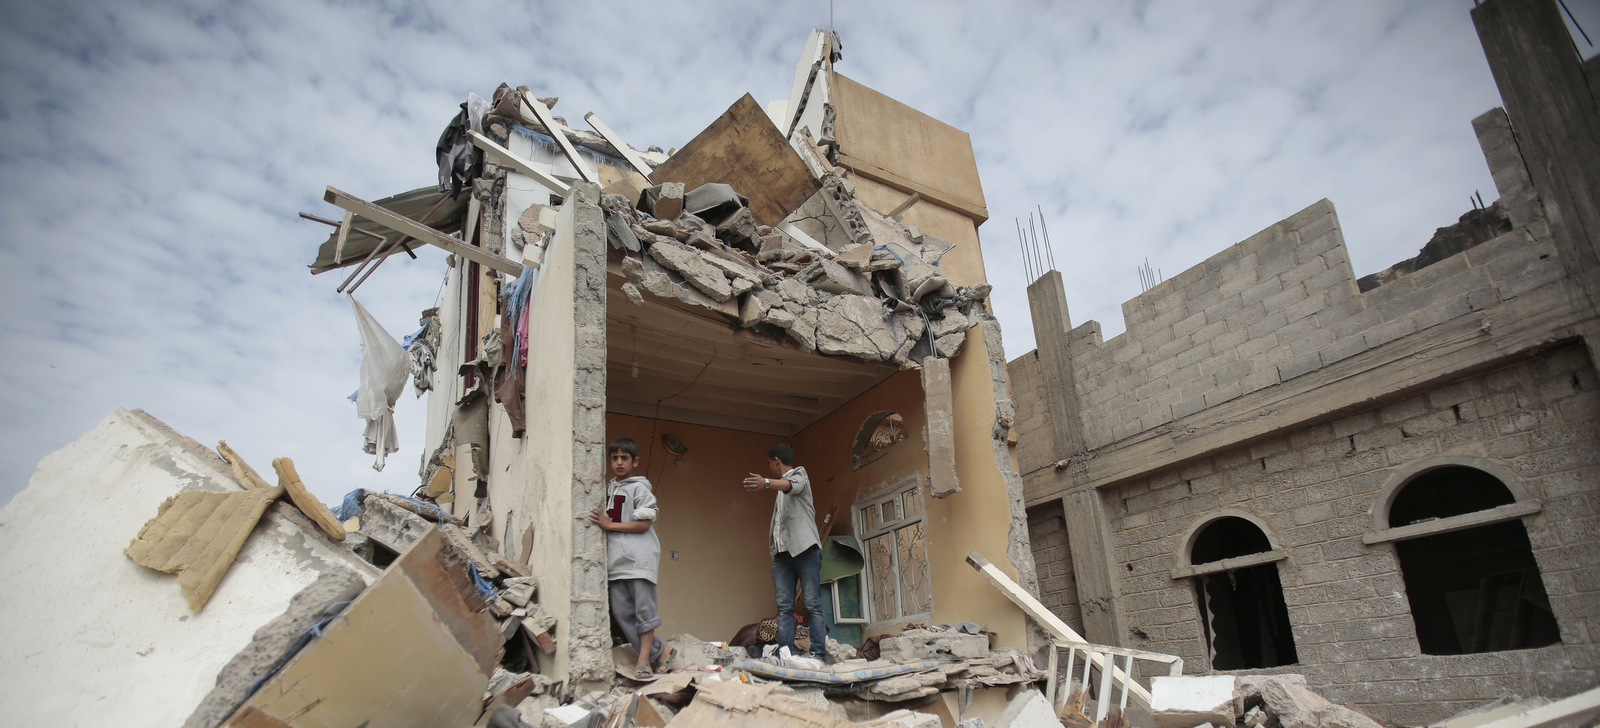 Boys stand on the rubble of a house destroyed by Saudi-led airstrikes in Sanaa, Yemen, Friday, Aug. 25, 2017. Airstrikes by a Saudi-led coalition targeted Yemen's capital early on Friday, hitting at least three houses in Sanaa and killing at least 14 civilians, including women and children, residents and eyewitnesses said. (AP Photo/Hani Mohammed)